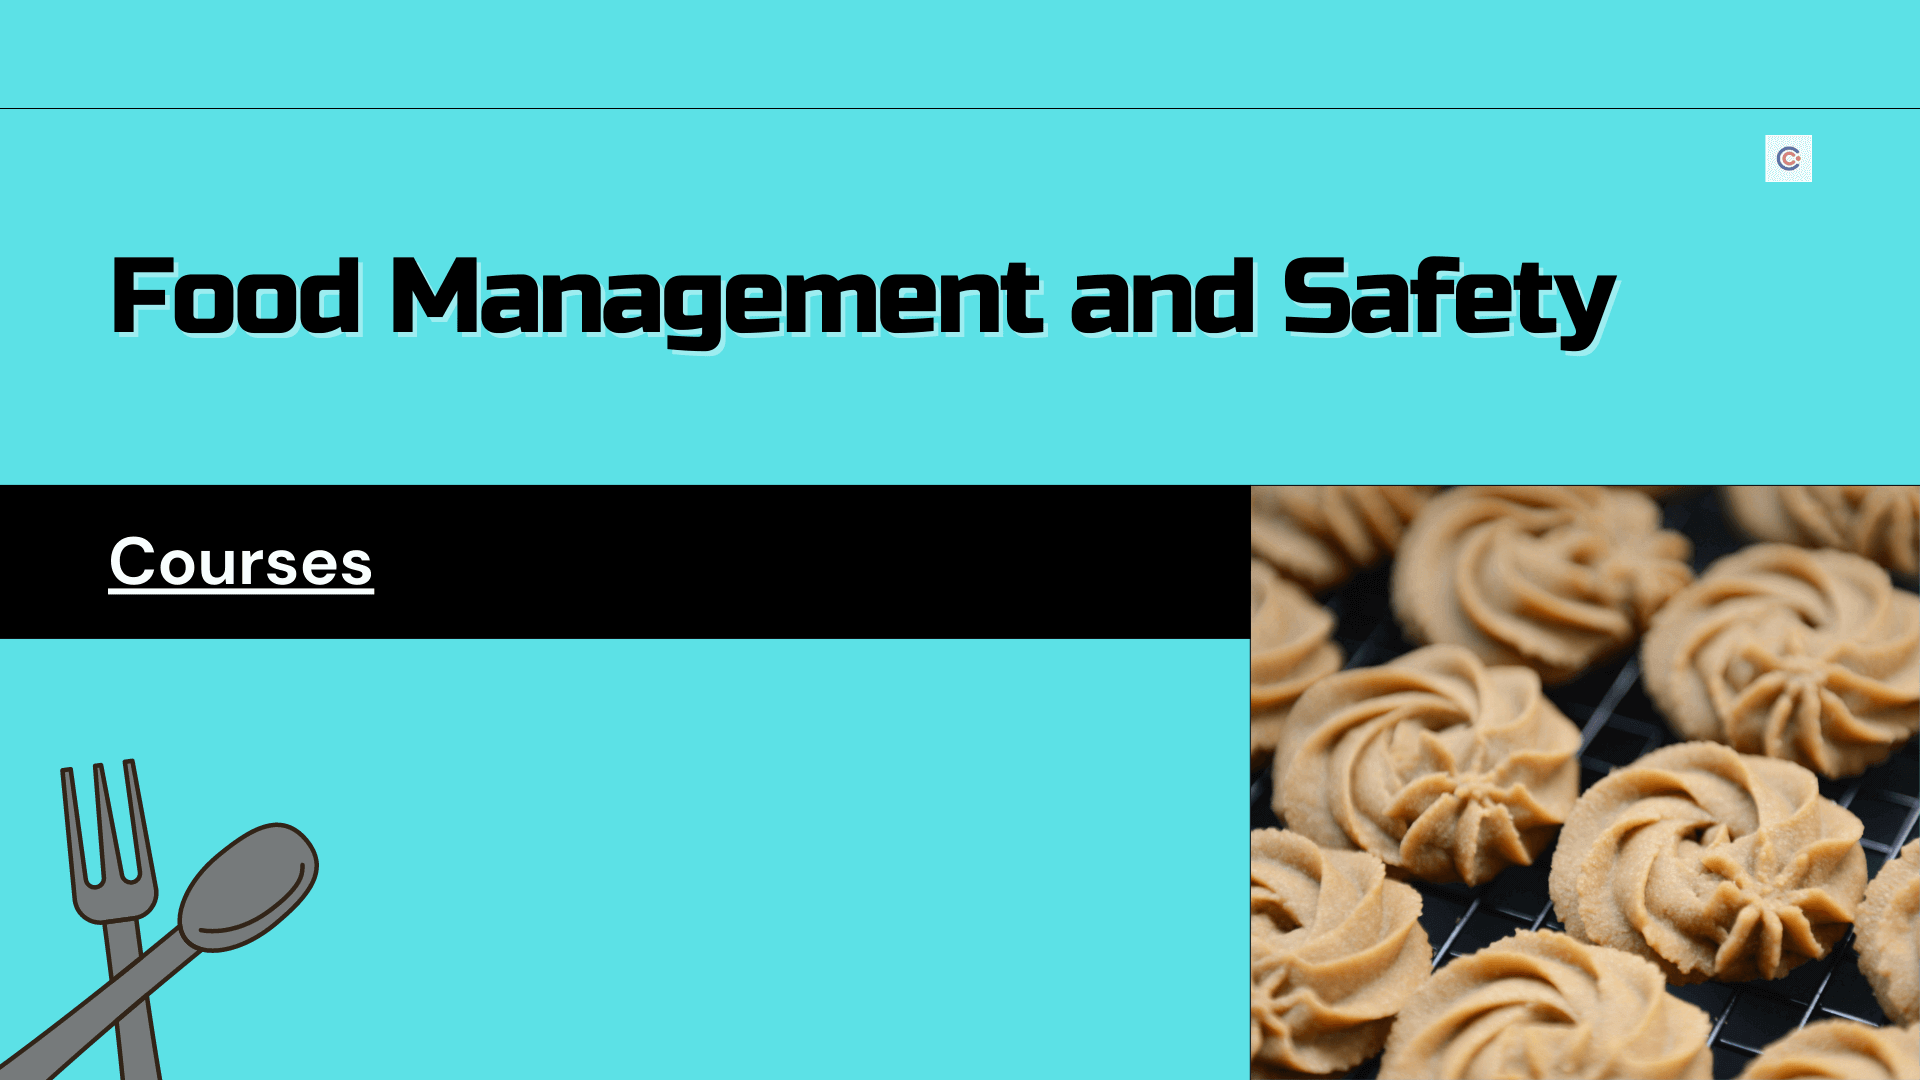 5 Best Food Management and Safety Courses - Learn Food Management Online